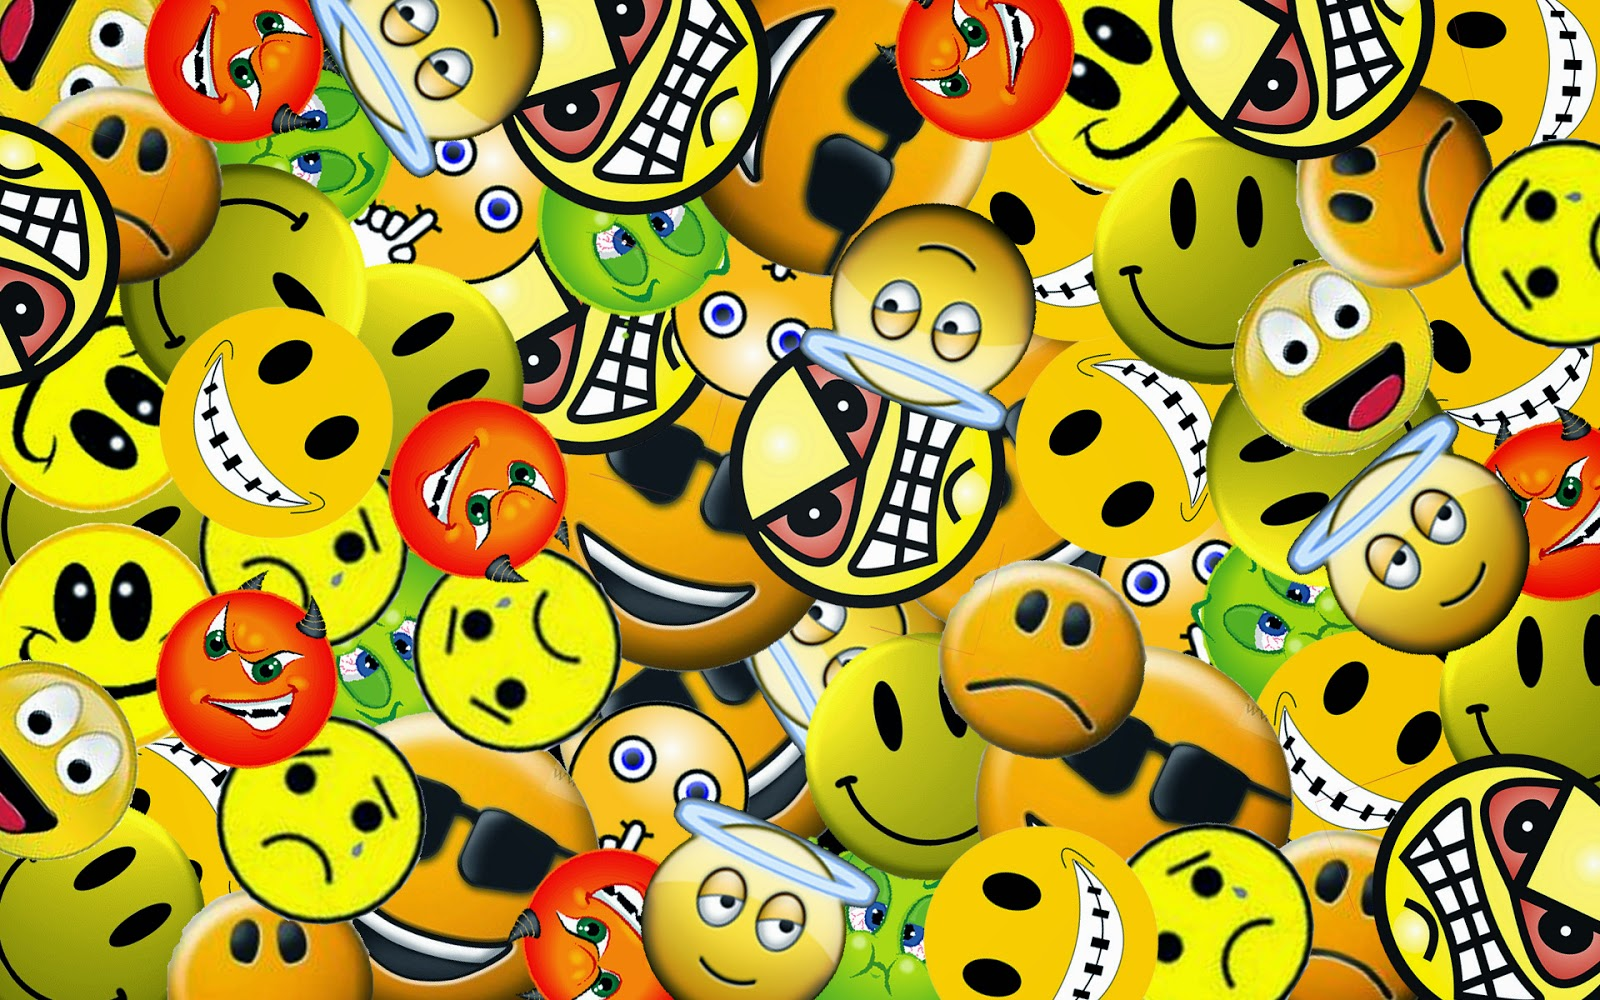 Smiley face background hd wallpaper for mobile facebook free download one sad smiley face between many happy smileys altavistaventures Images